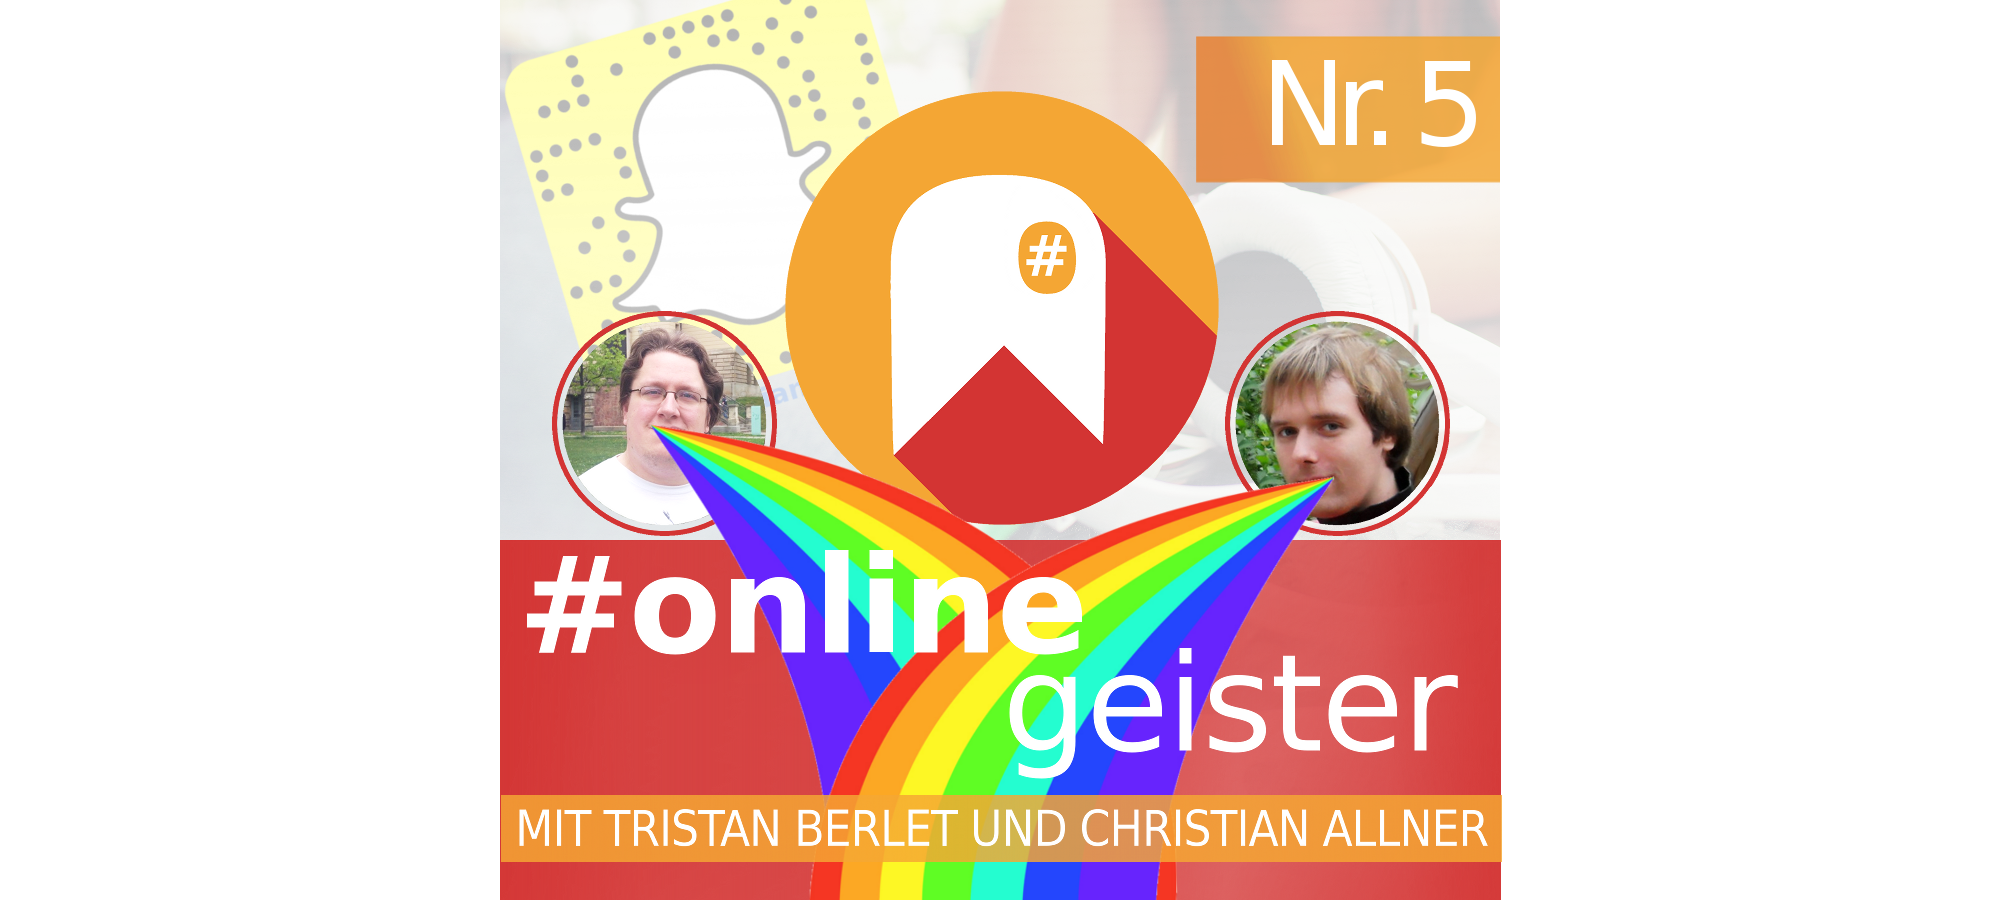 onlinegeister-cover-trans-wide-nr5